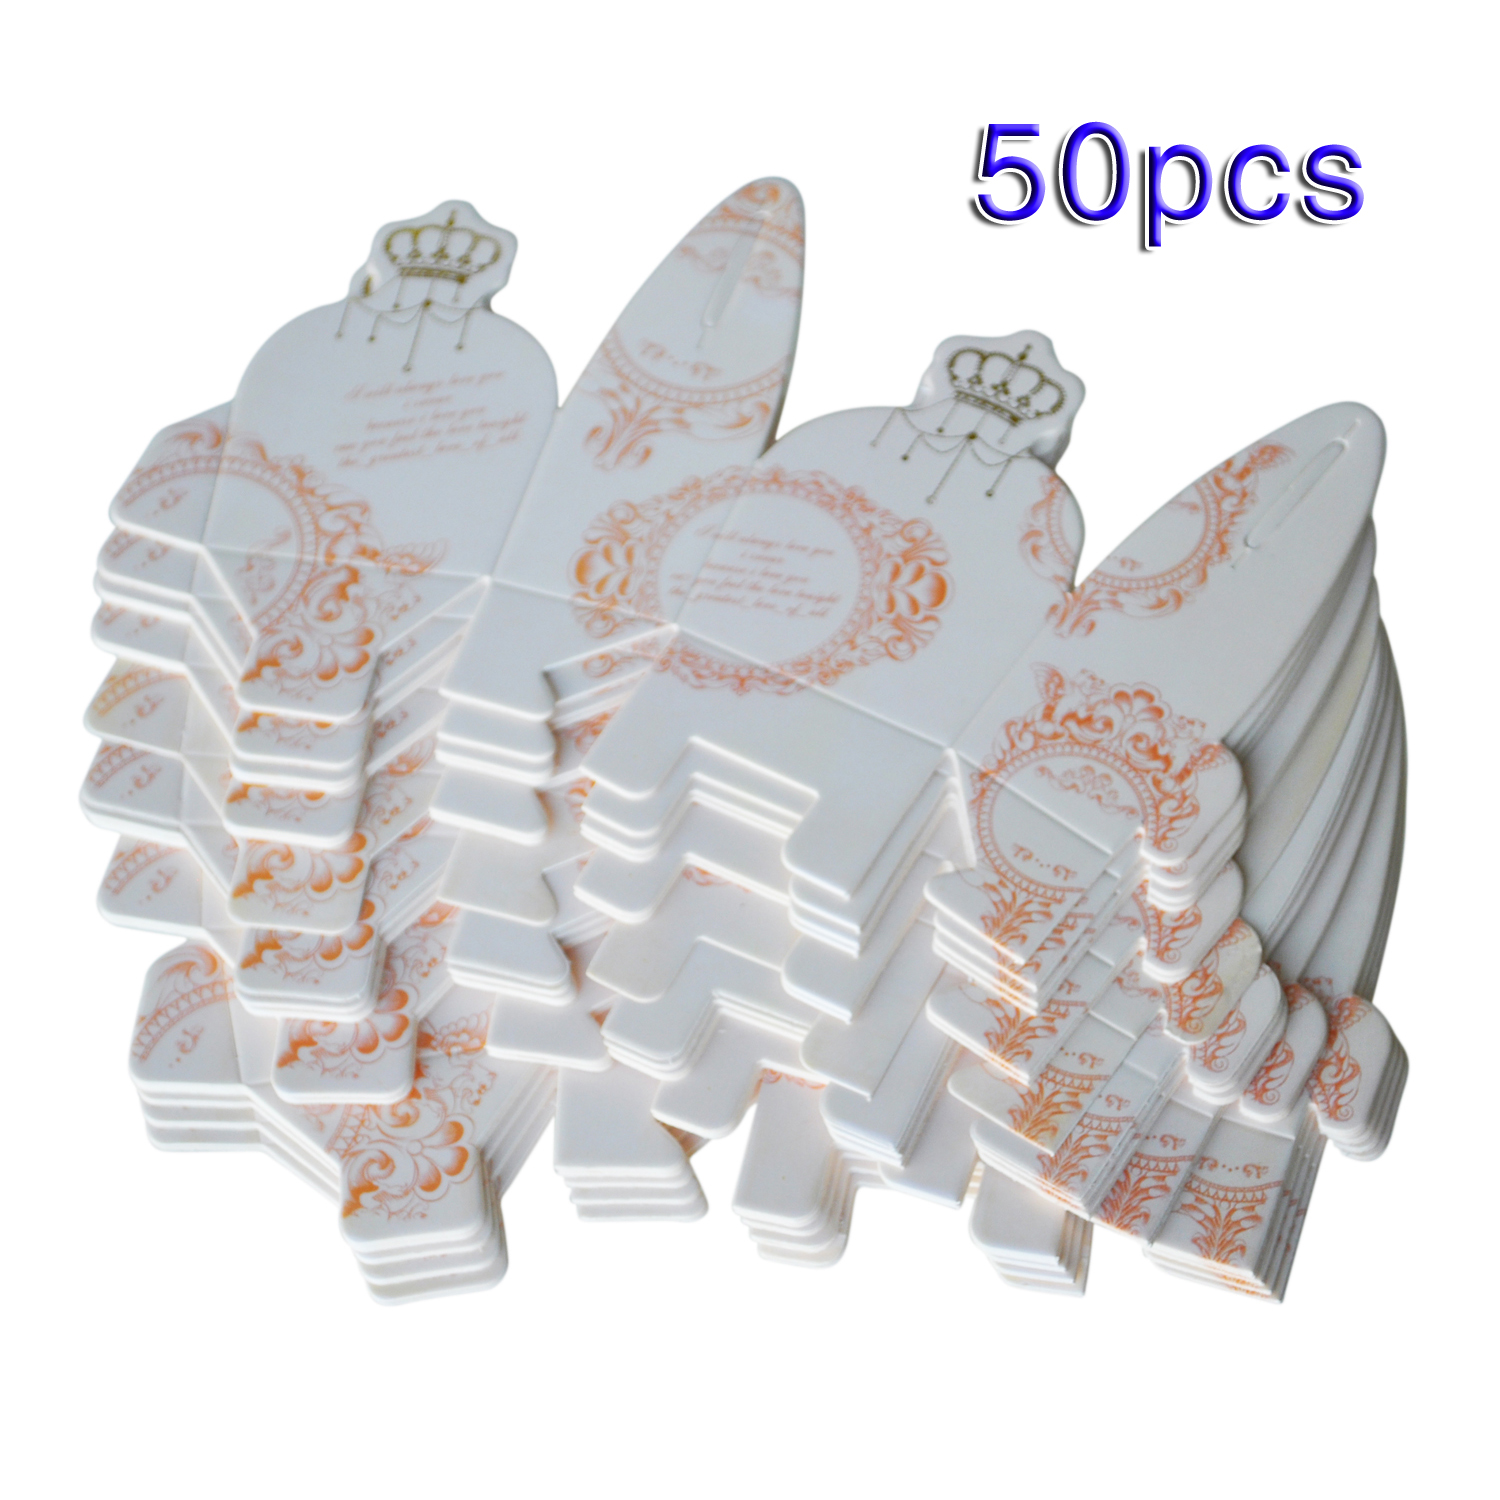 Couronne Decoration Us 5 76 Uesh 50x Boite A Dragees Couronne Mariage Bapteme Rose Decoration Table Fete Favor Box On Aliexpress Alibaba Group